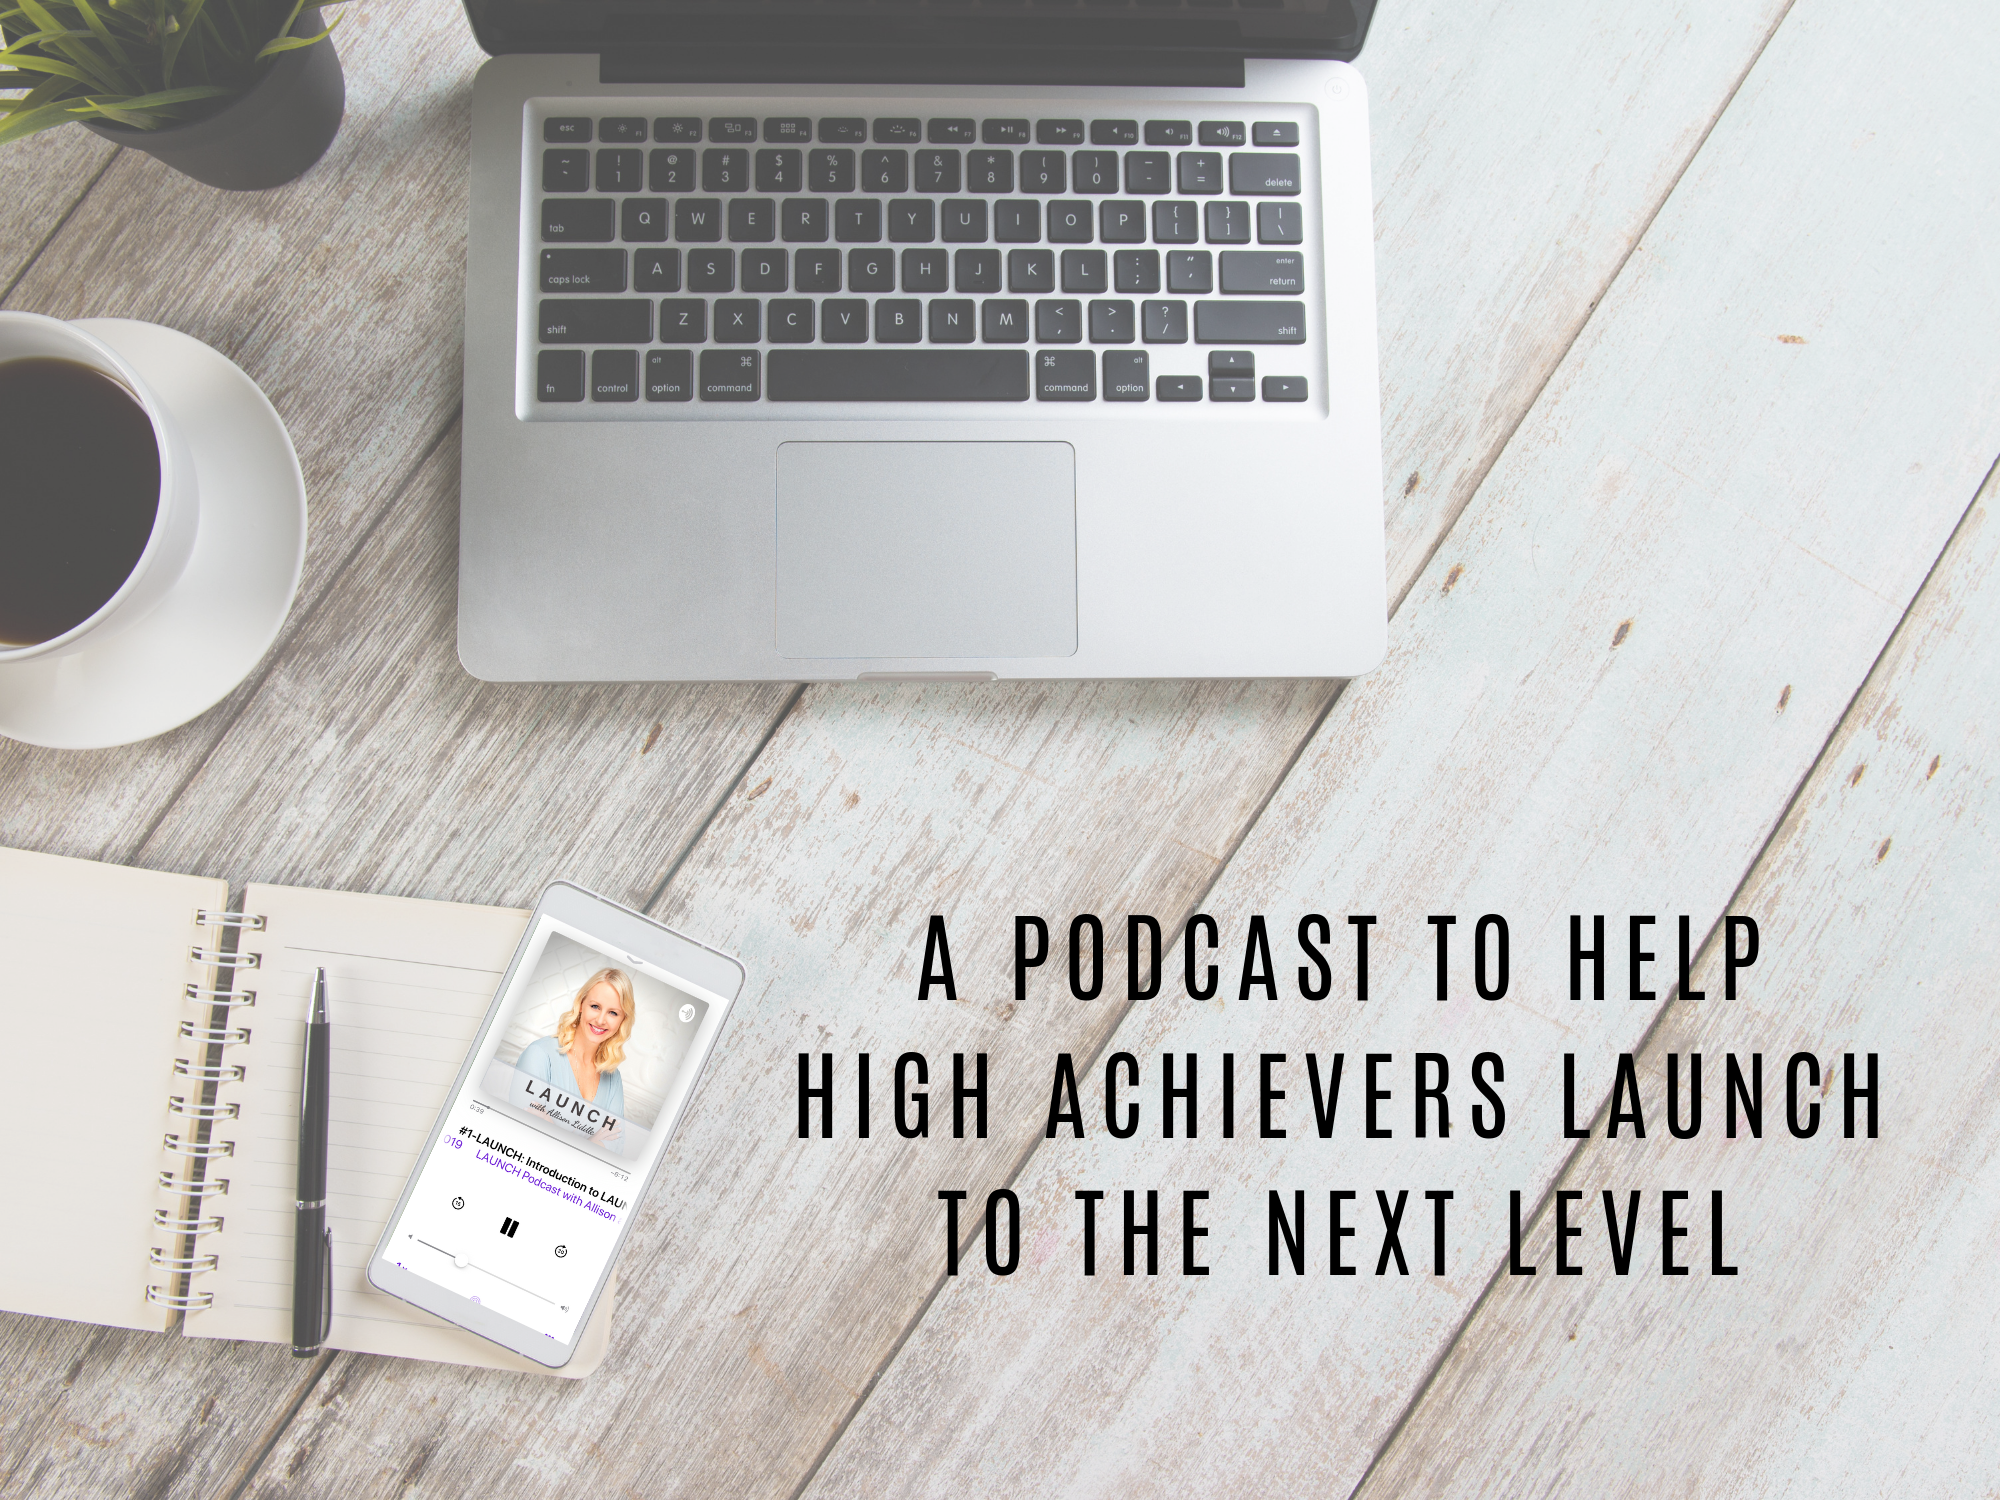 Subscribe Now to Discover Why Awesome People from Around the World Find the Time to Tune into the LAUNCH Podcast - Expert interviews, Branding, Business-Building & Personal Development to help you and your business LAUNCH to the next level.